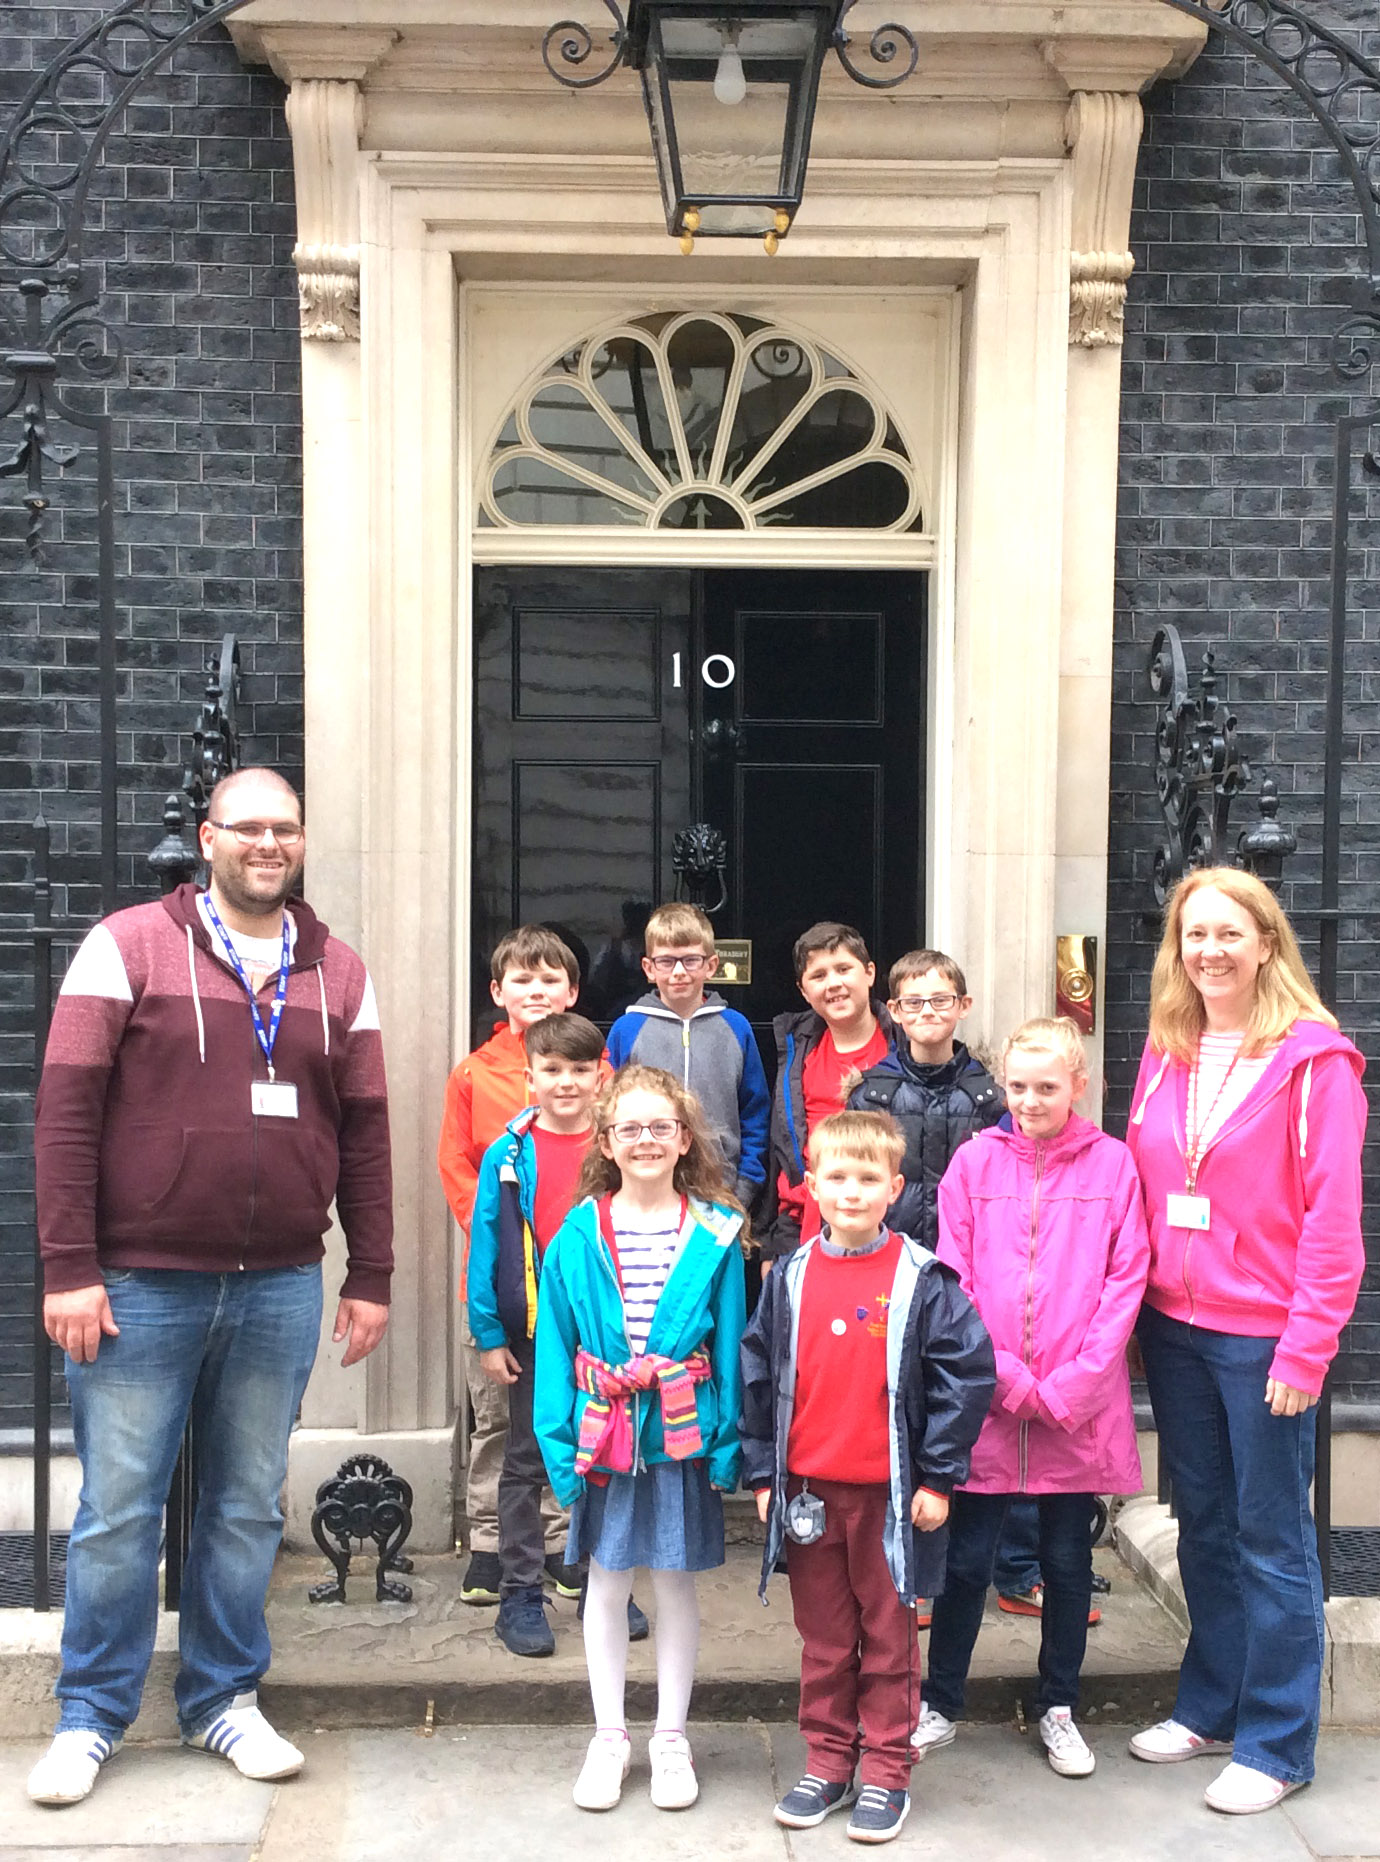 Our MP Welcomes Students on London Visit